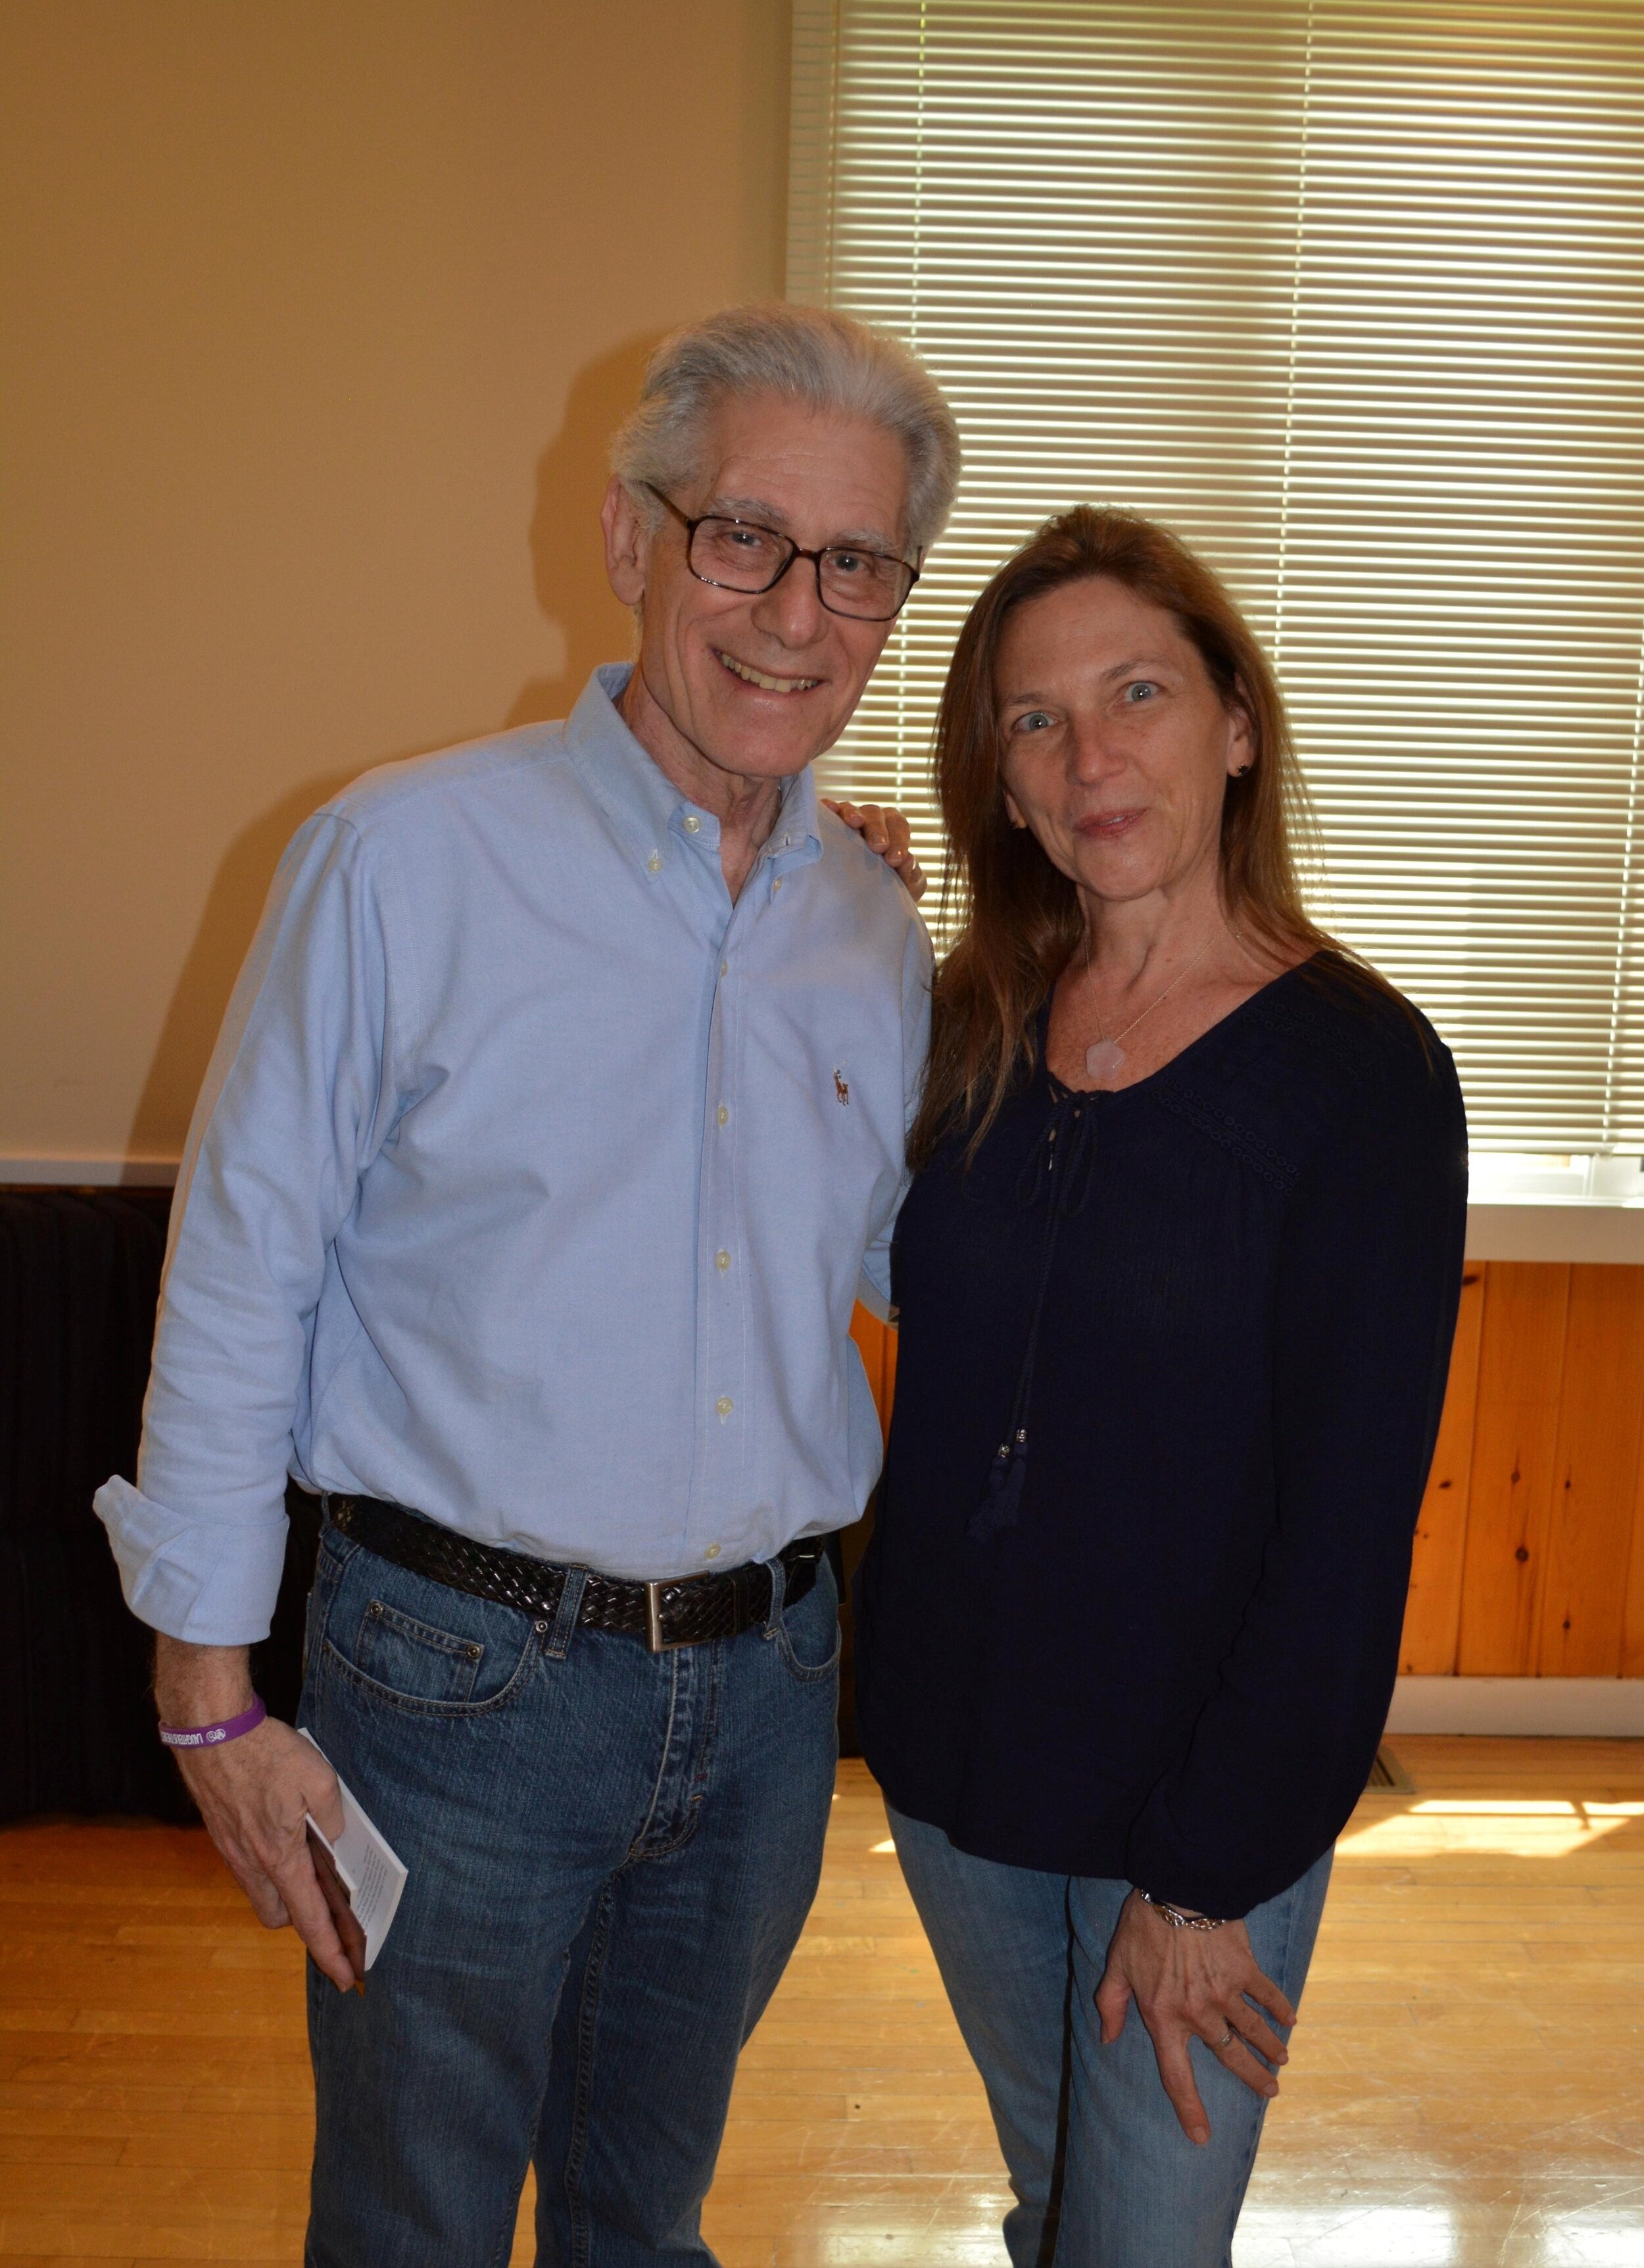 Dr. Brian Weiss with me at training class.